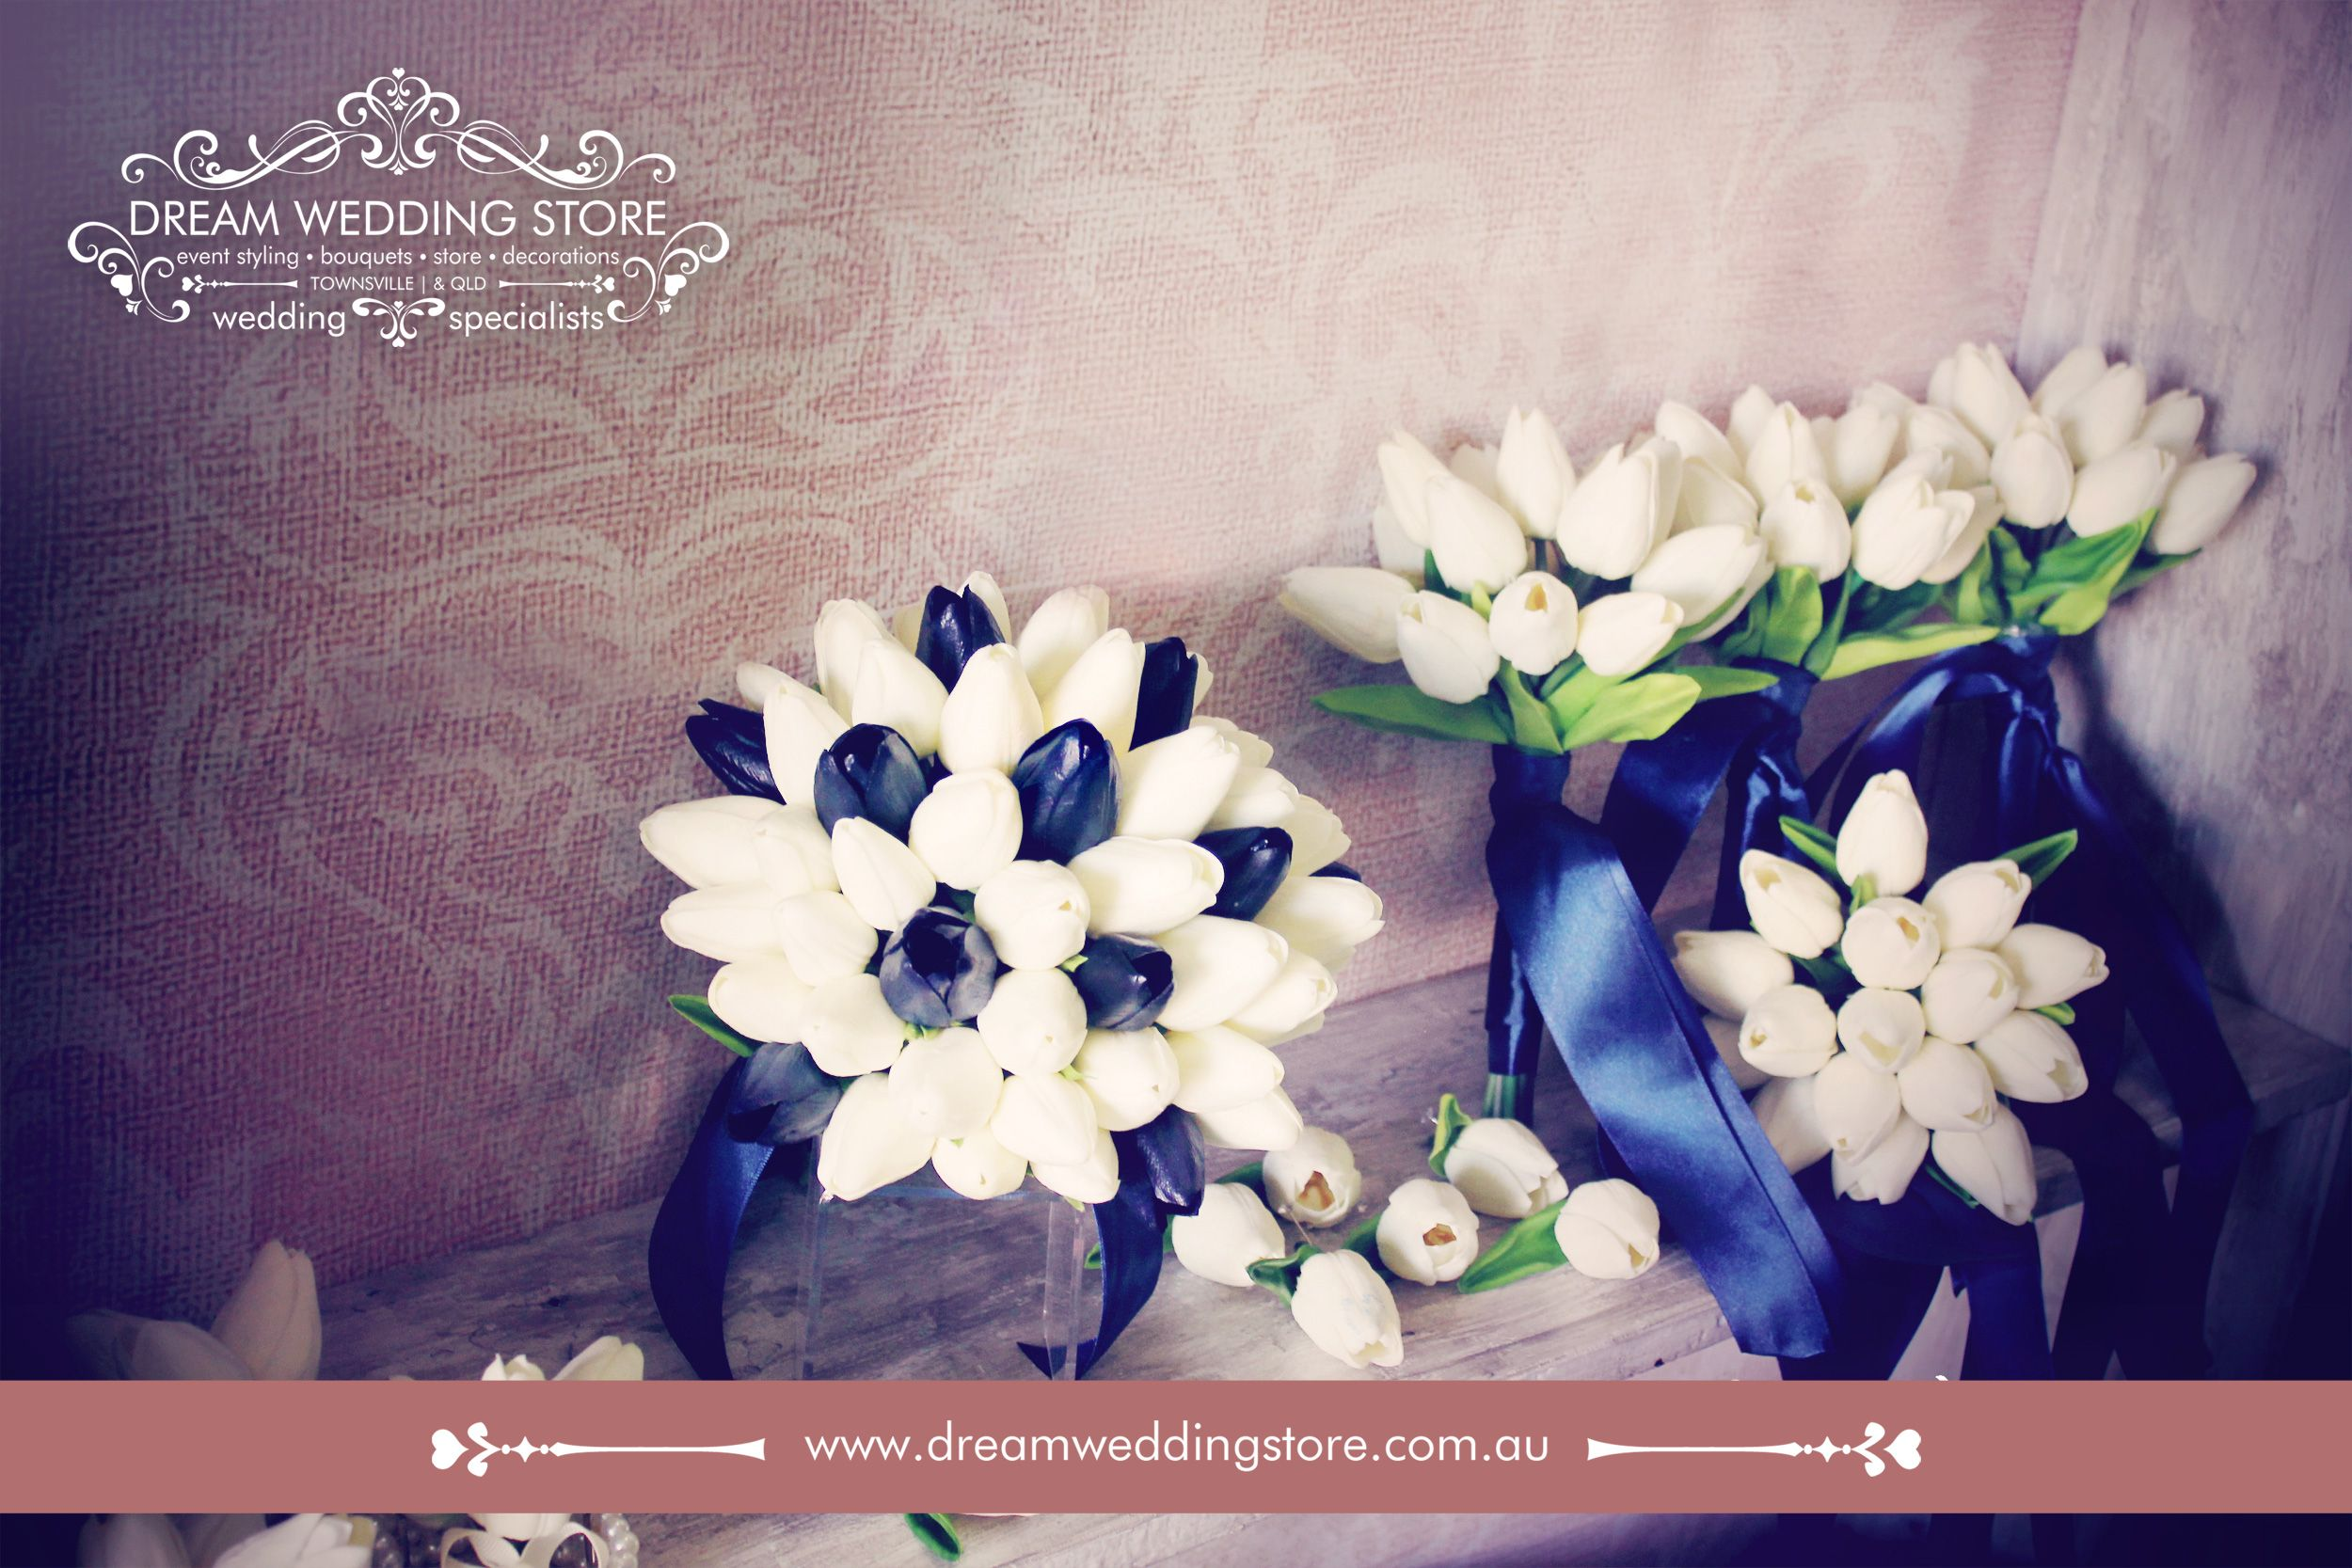 Pin by dream wedding store on artificial flower bouquets by dream wedding store flower bouquets artificial flowers floral bouquets art flowers junglespirit Choice Image